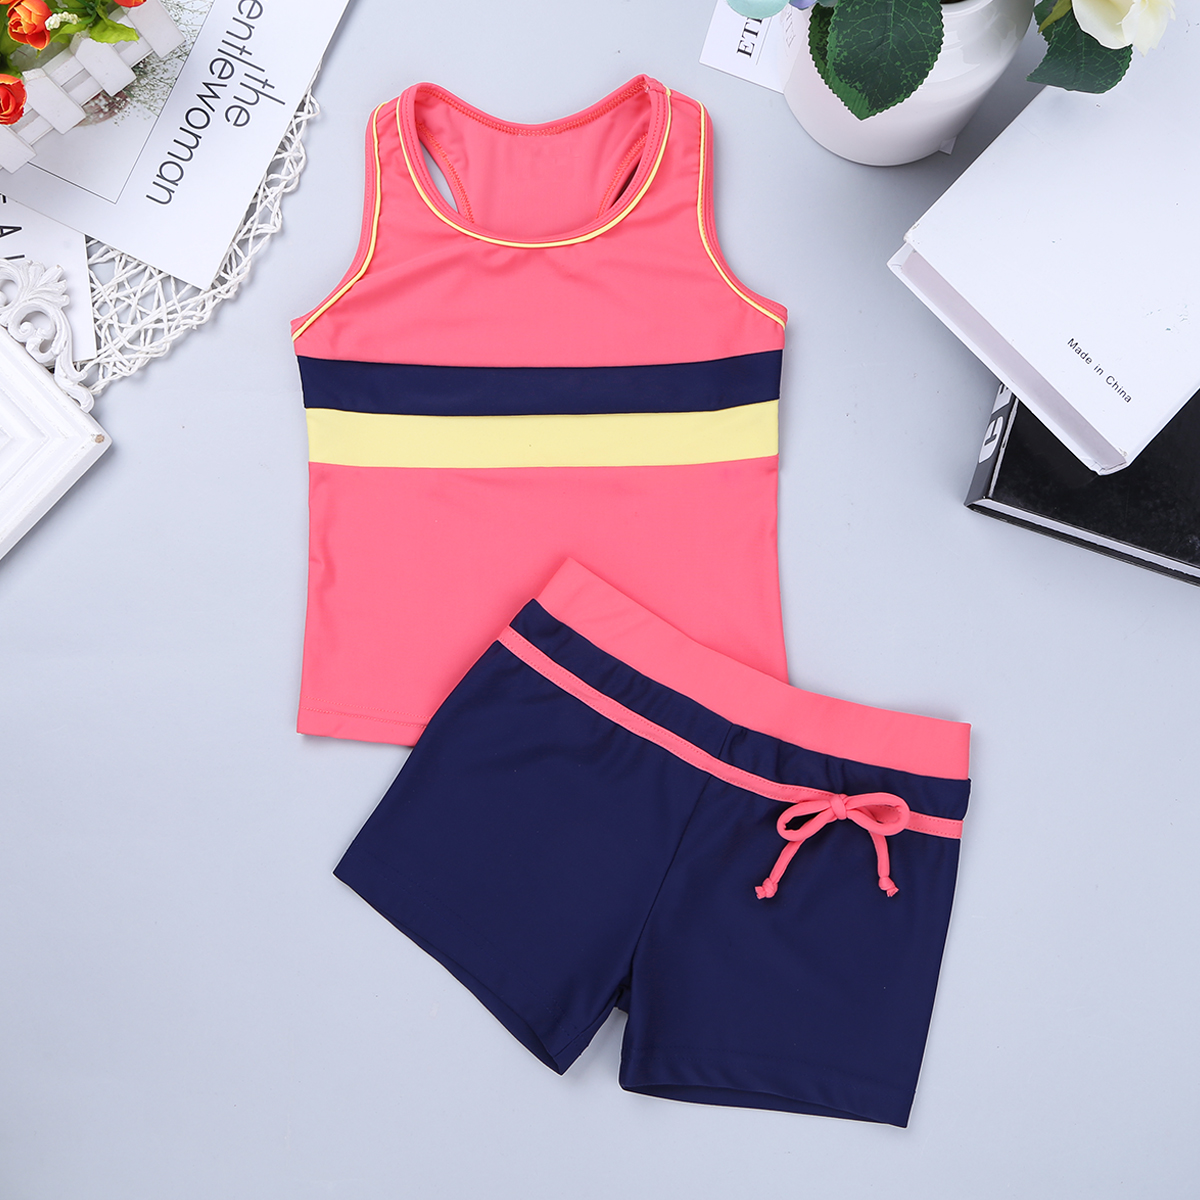 Swimwear Girl Tops Shorts Bathing-Suit Kids Bikini Tankini Sport Two-Piece Children